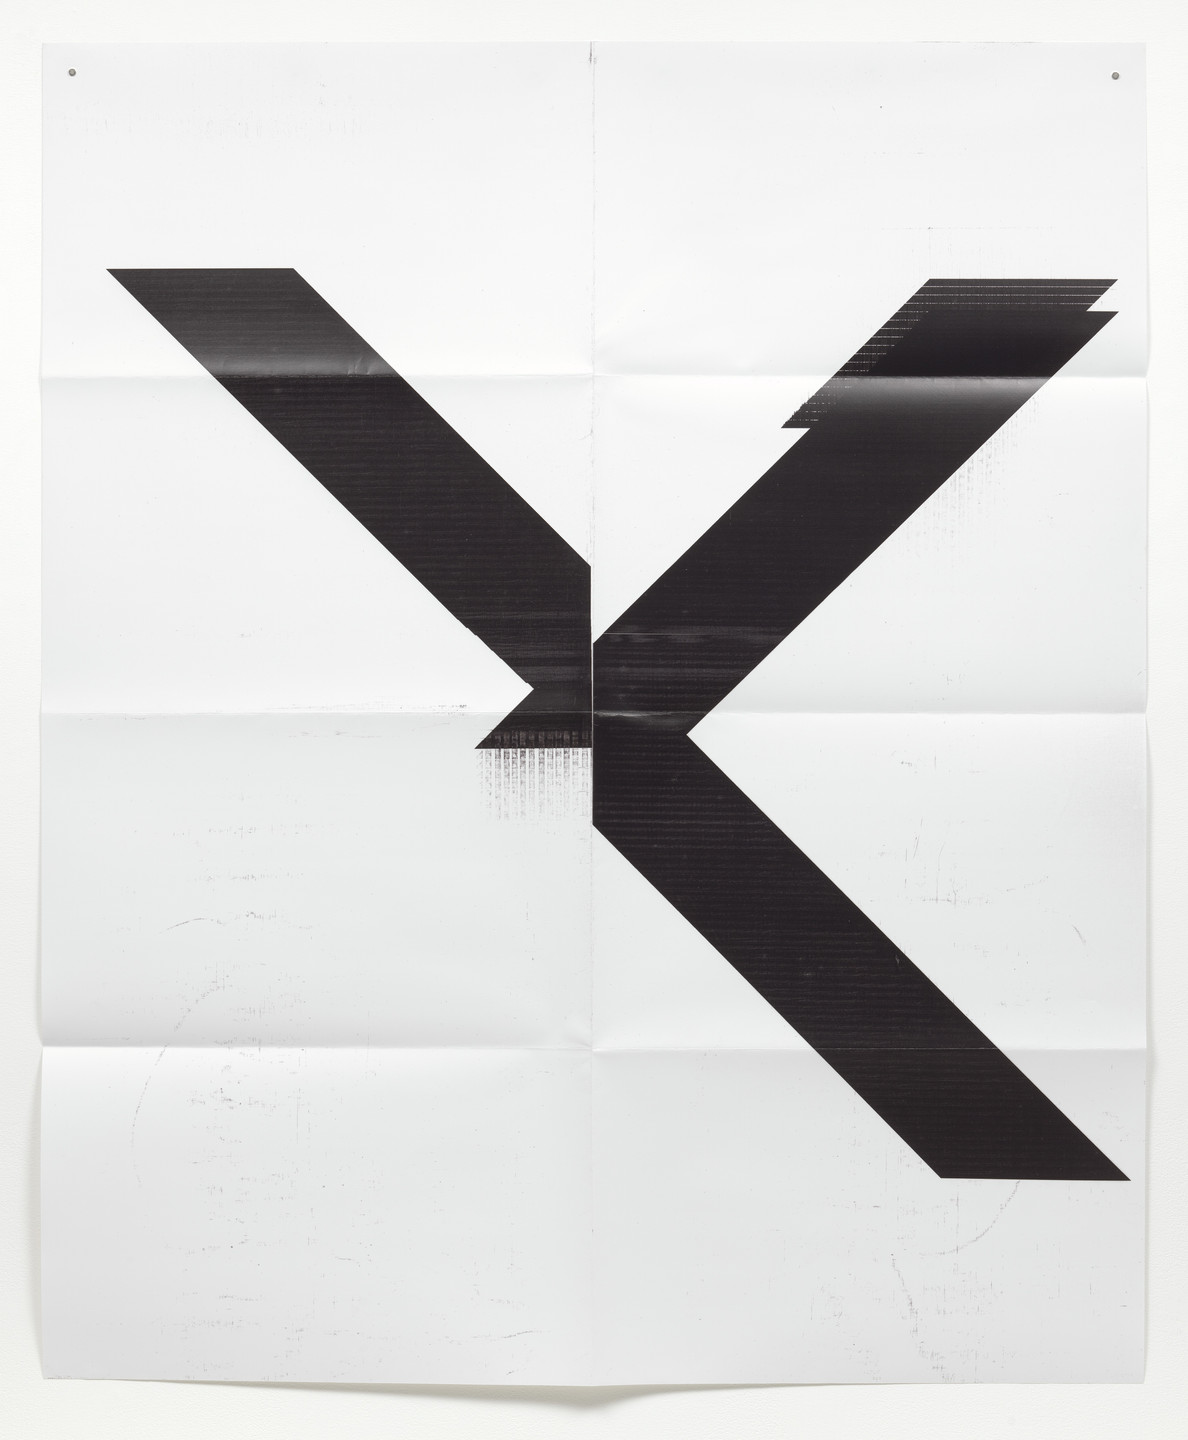 Wade Guyton. X Poster (Untitled, 2007, Epson UltraChrome inkjet on linen, 84 x 69 inches, WG1999). 2015